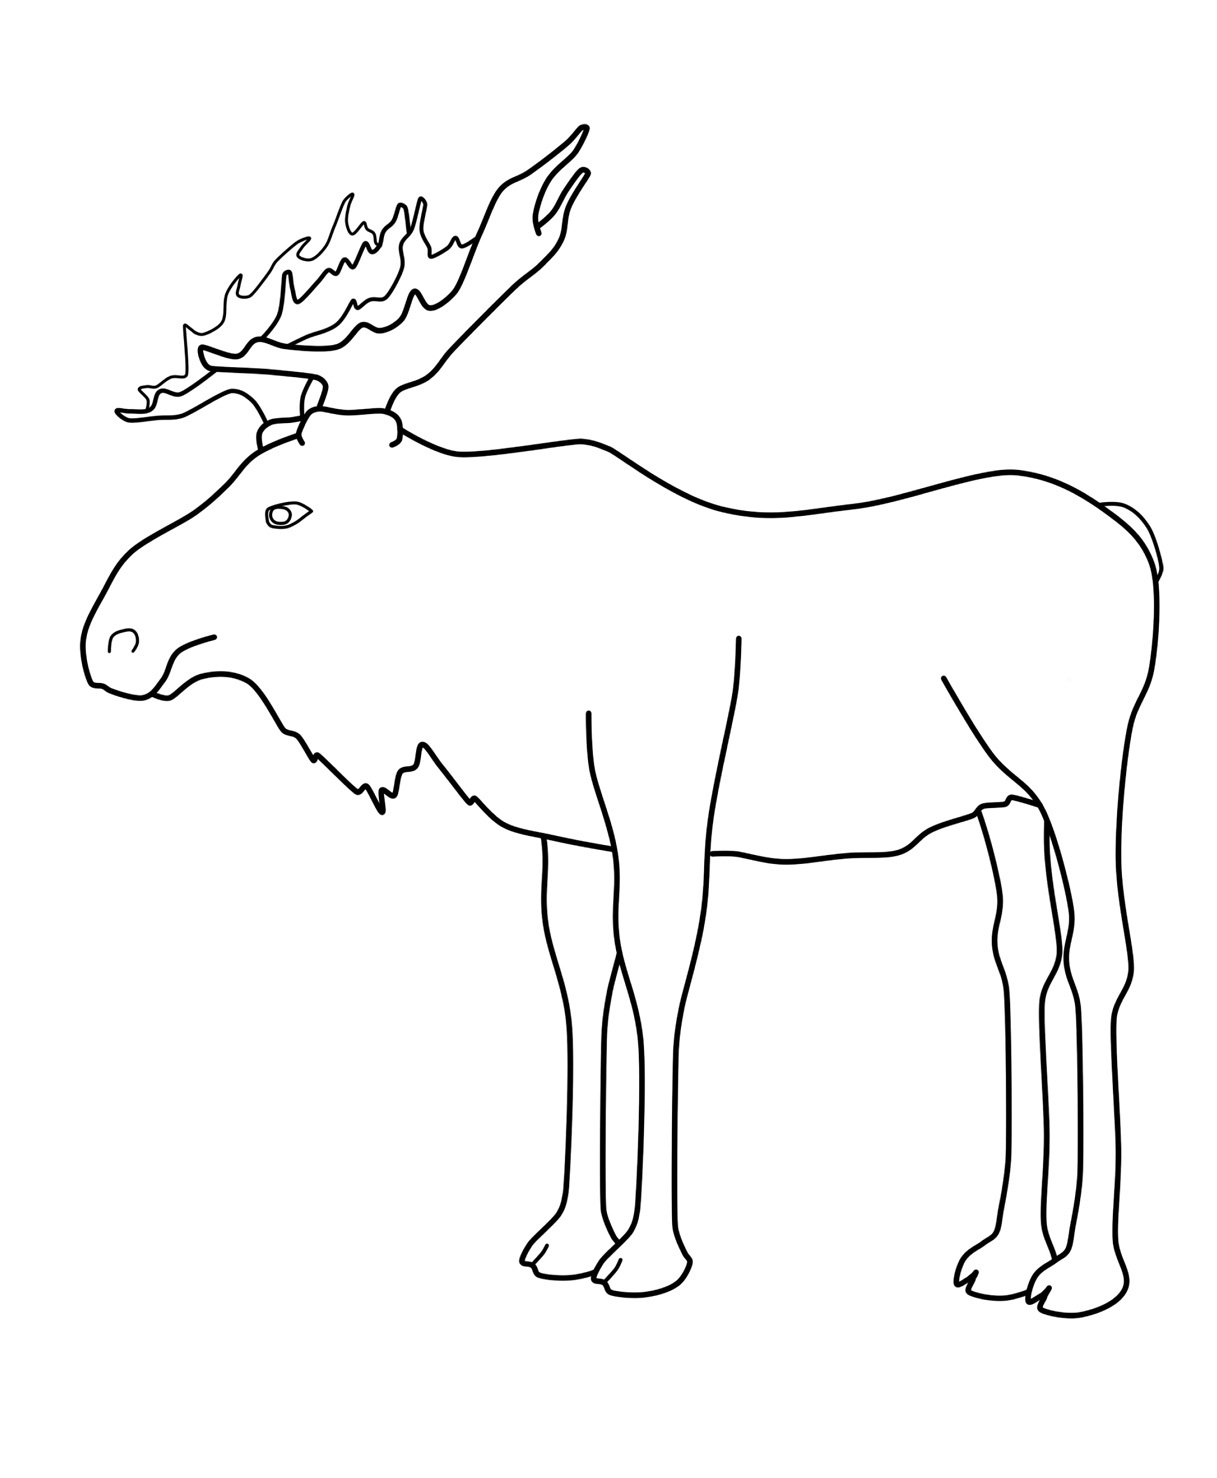 moose drawing at getdrawings com free for personal use moose